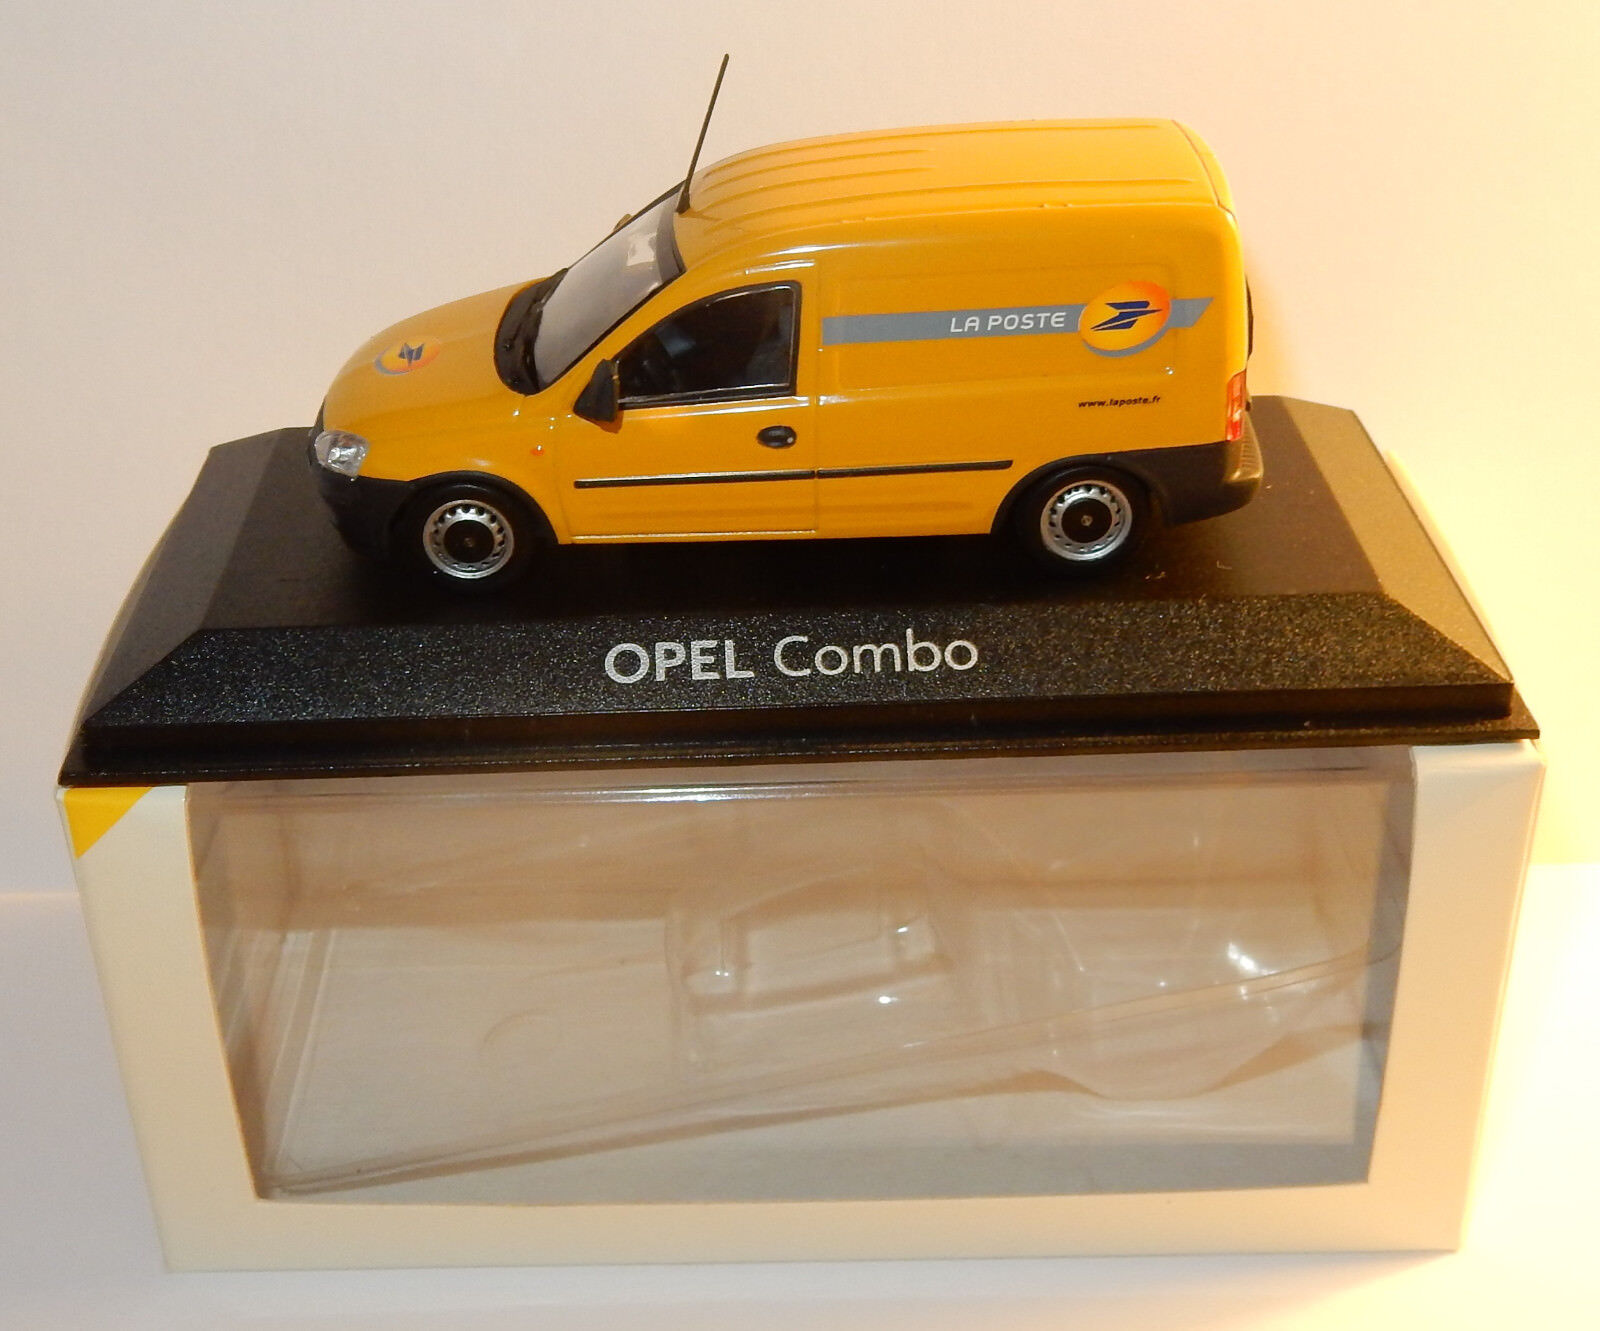 RARE NEW MINICHAMPS OPEL COMBO POSTS POSITION PTT 1 43 IN BOX